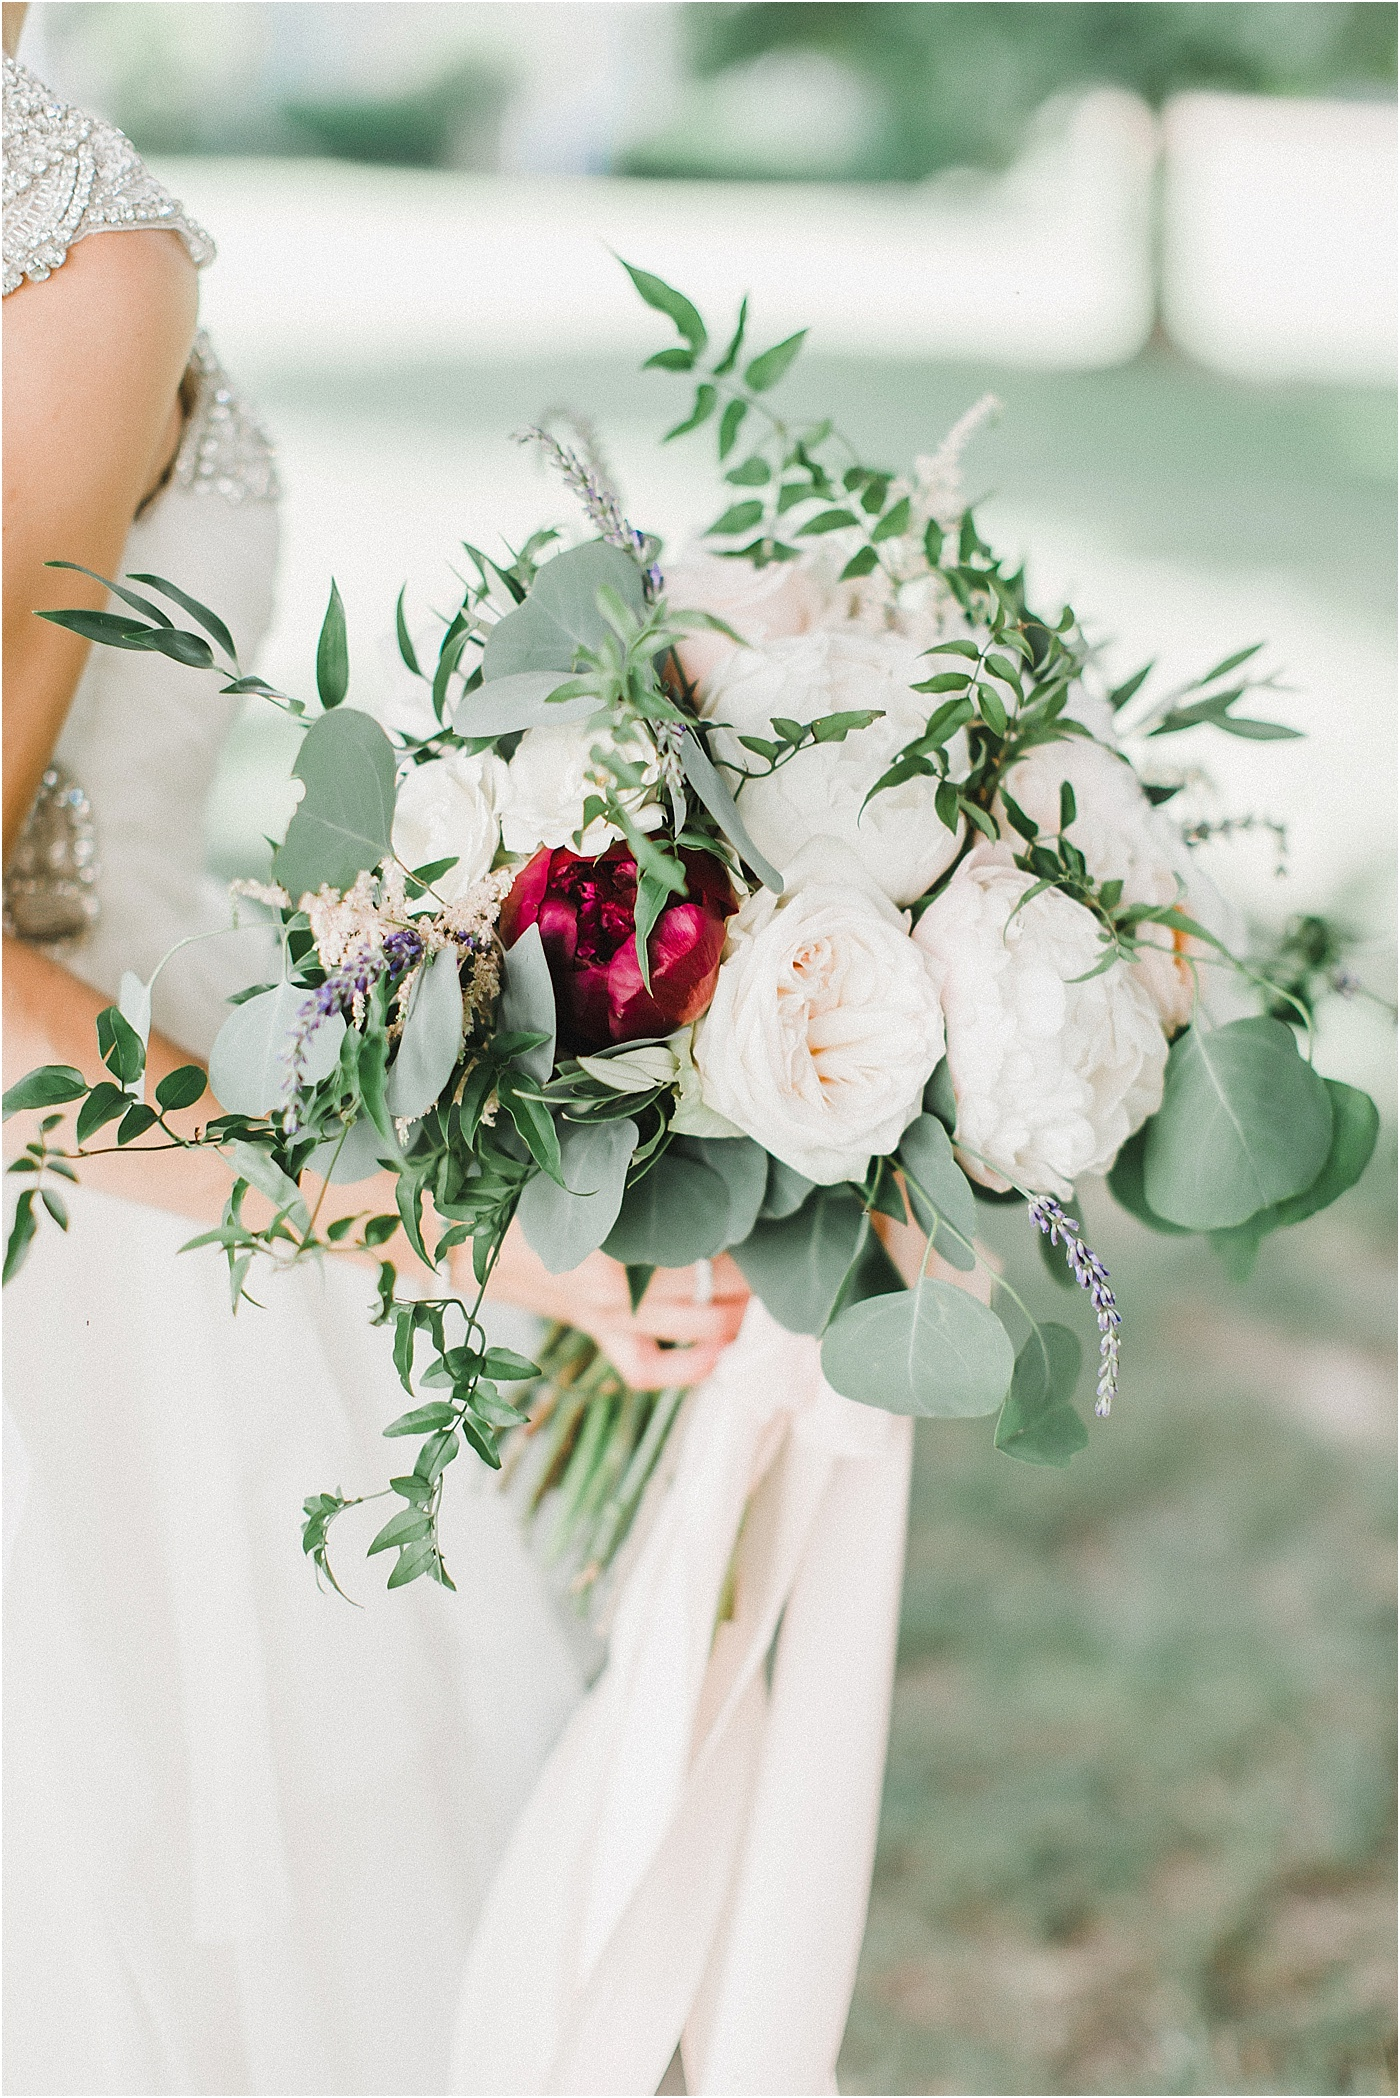 Loose Organic Wedding Bouquet with Garden Roses + Peonies